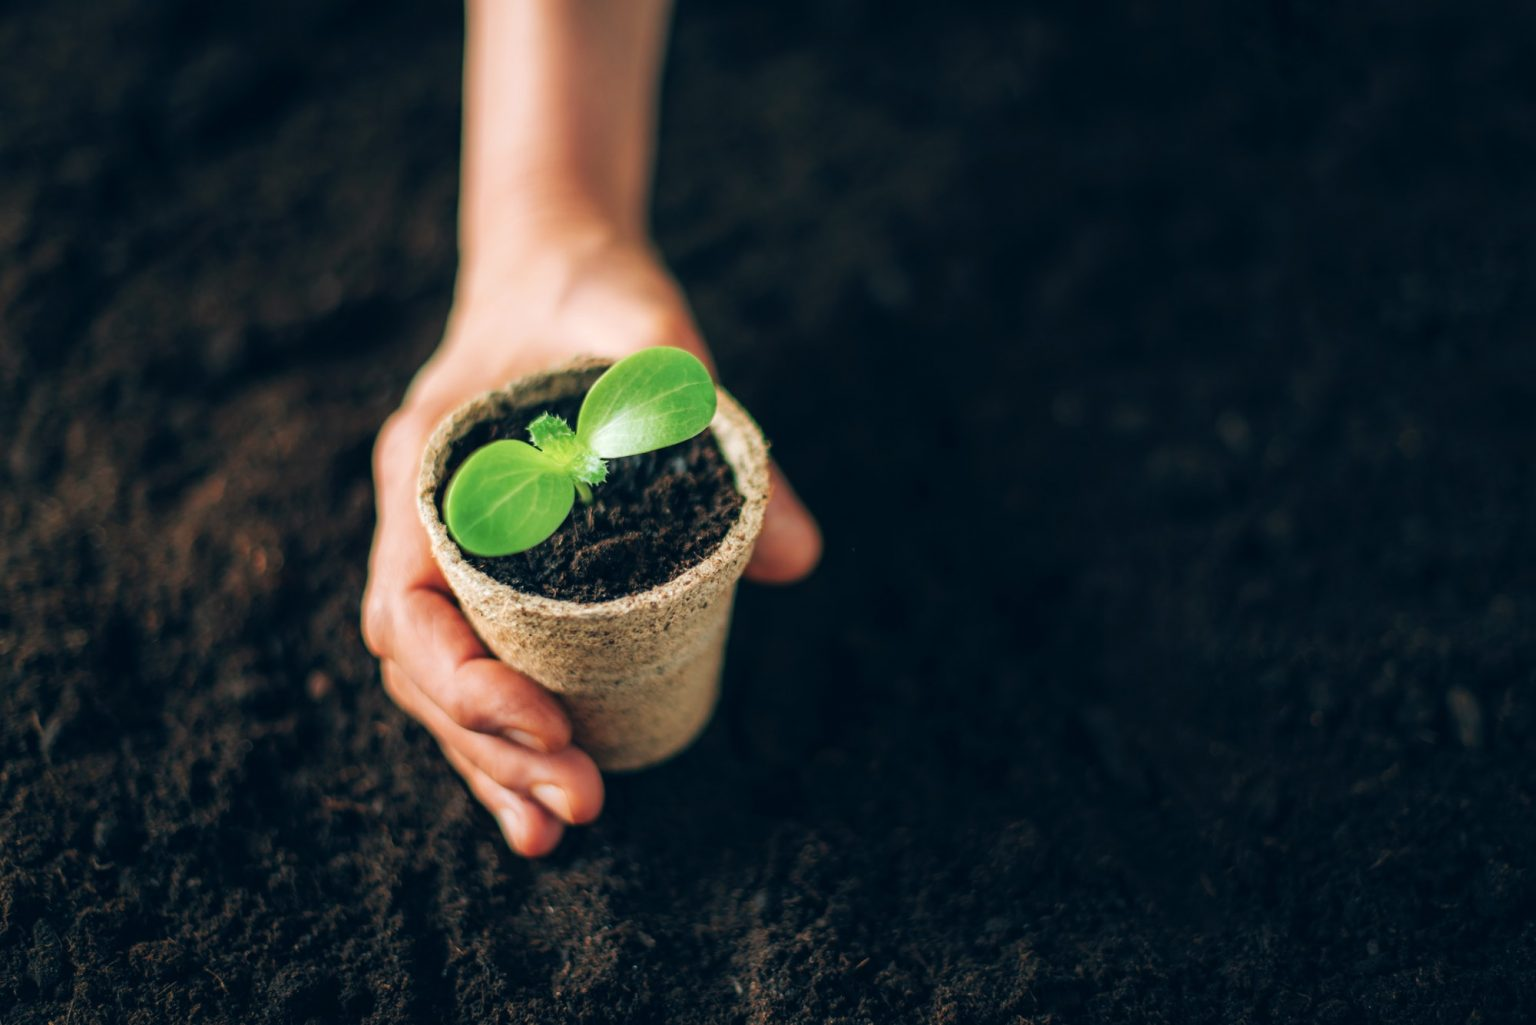 Hand holding potted seedlings growing in biodegradable pots over soil background with copy space